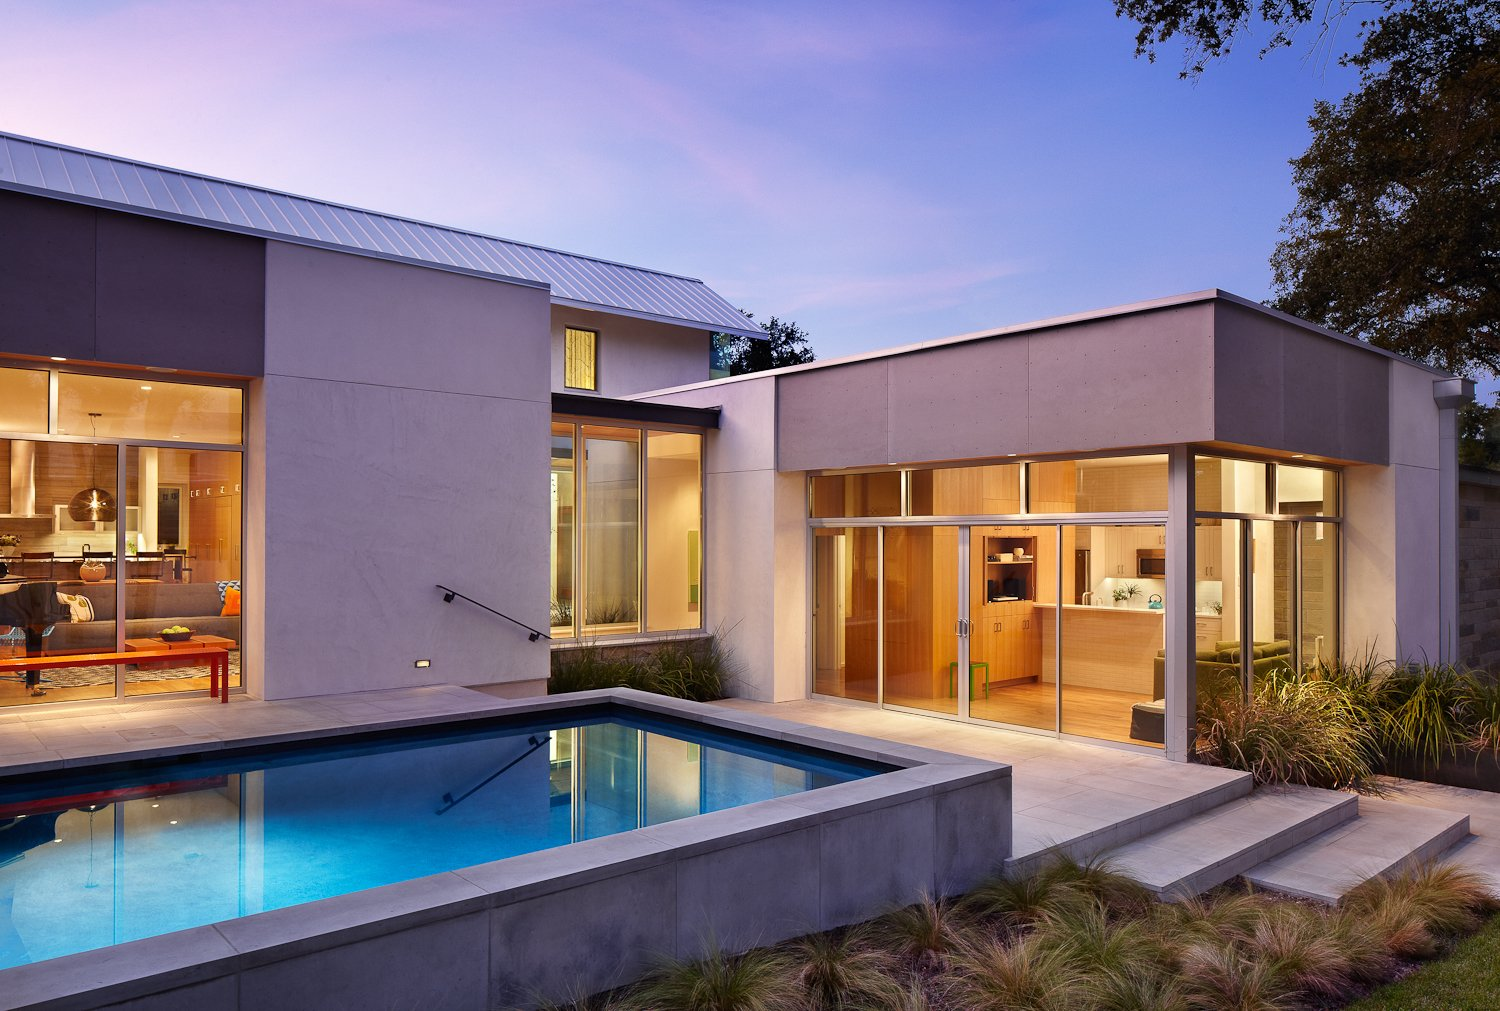 Pool and attached apartment.  Vance Lane Residence by Jamie Chioco